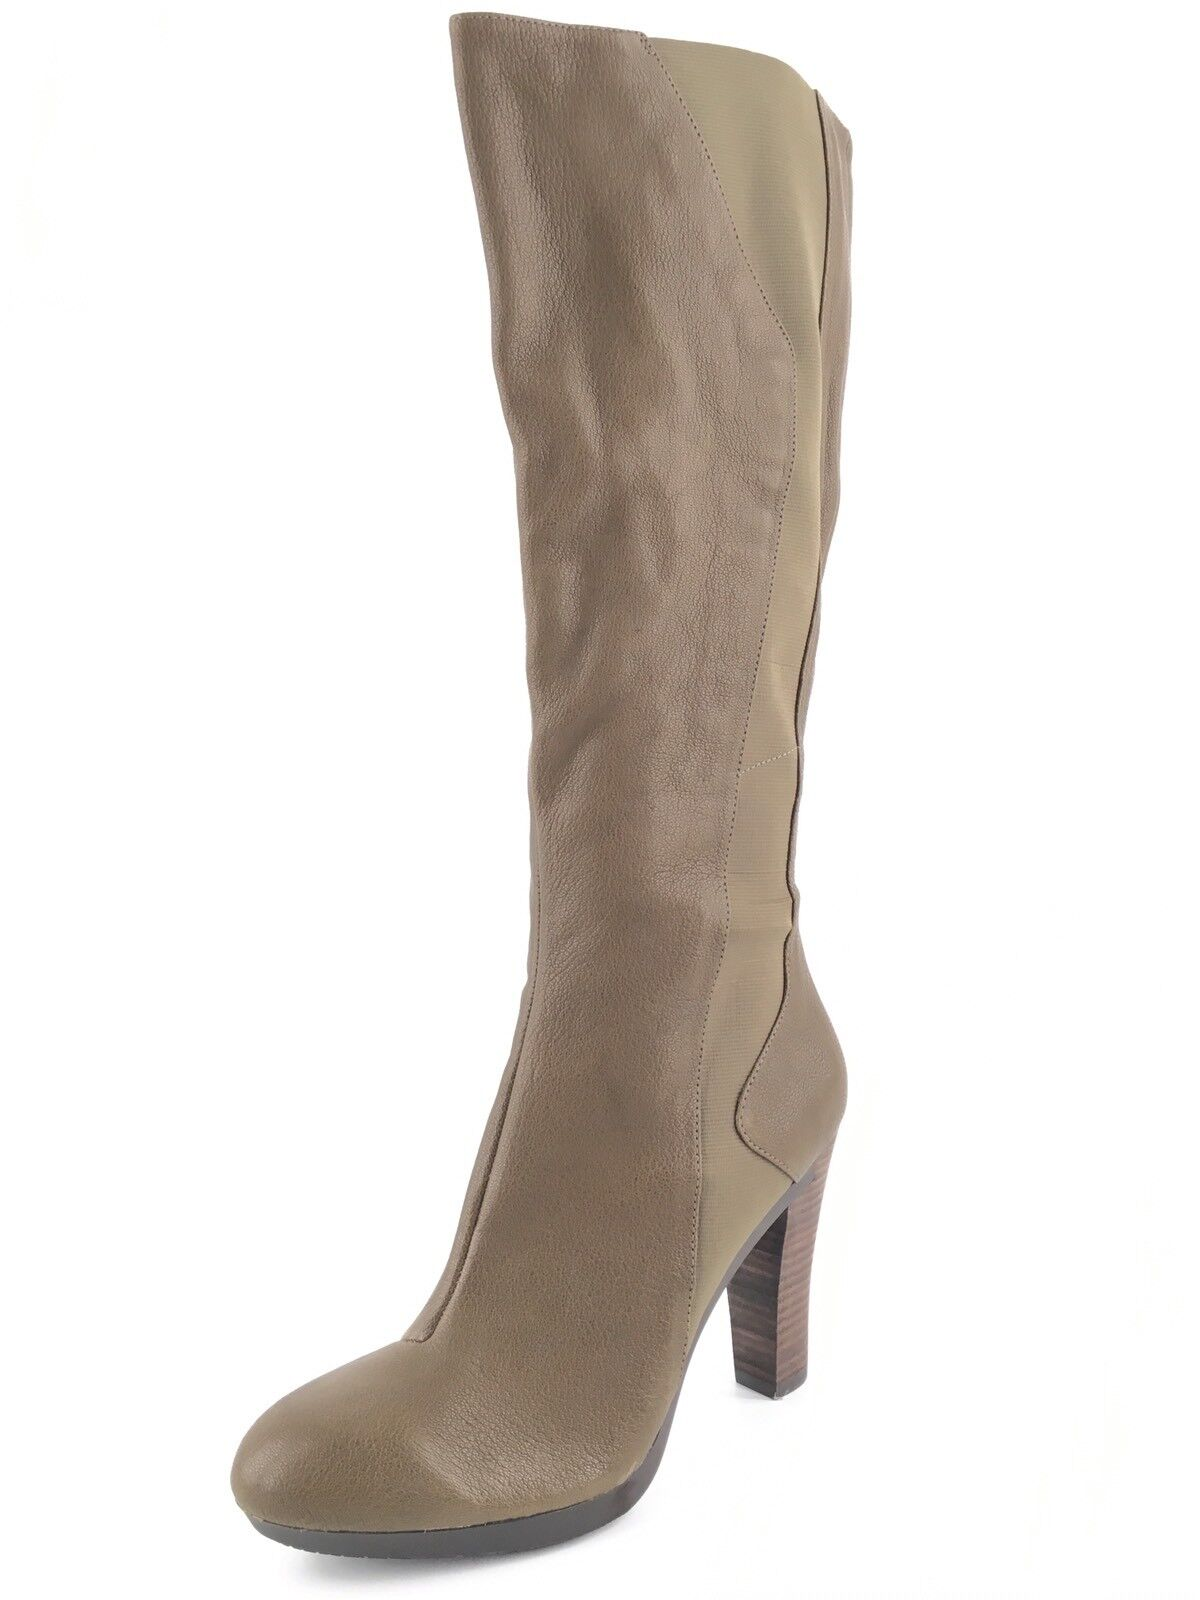 New Tsubo Tarian Olive Leather Knee High Boots Womens Size 10 M $310*